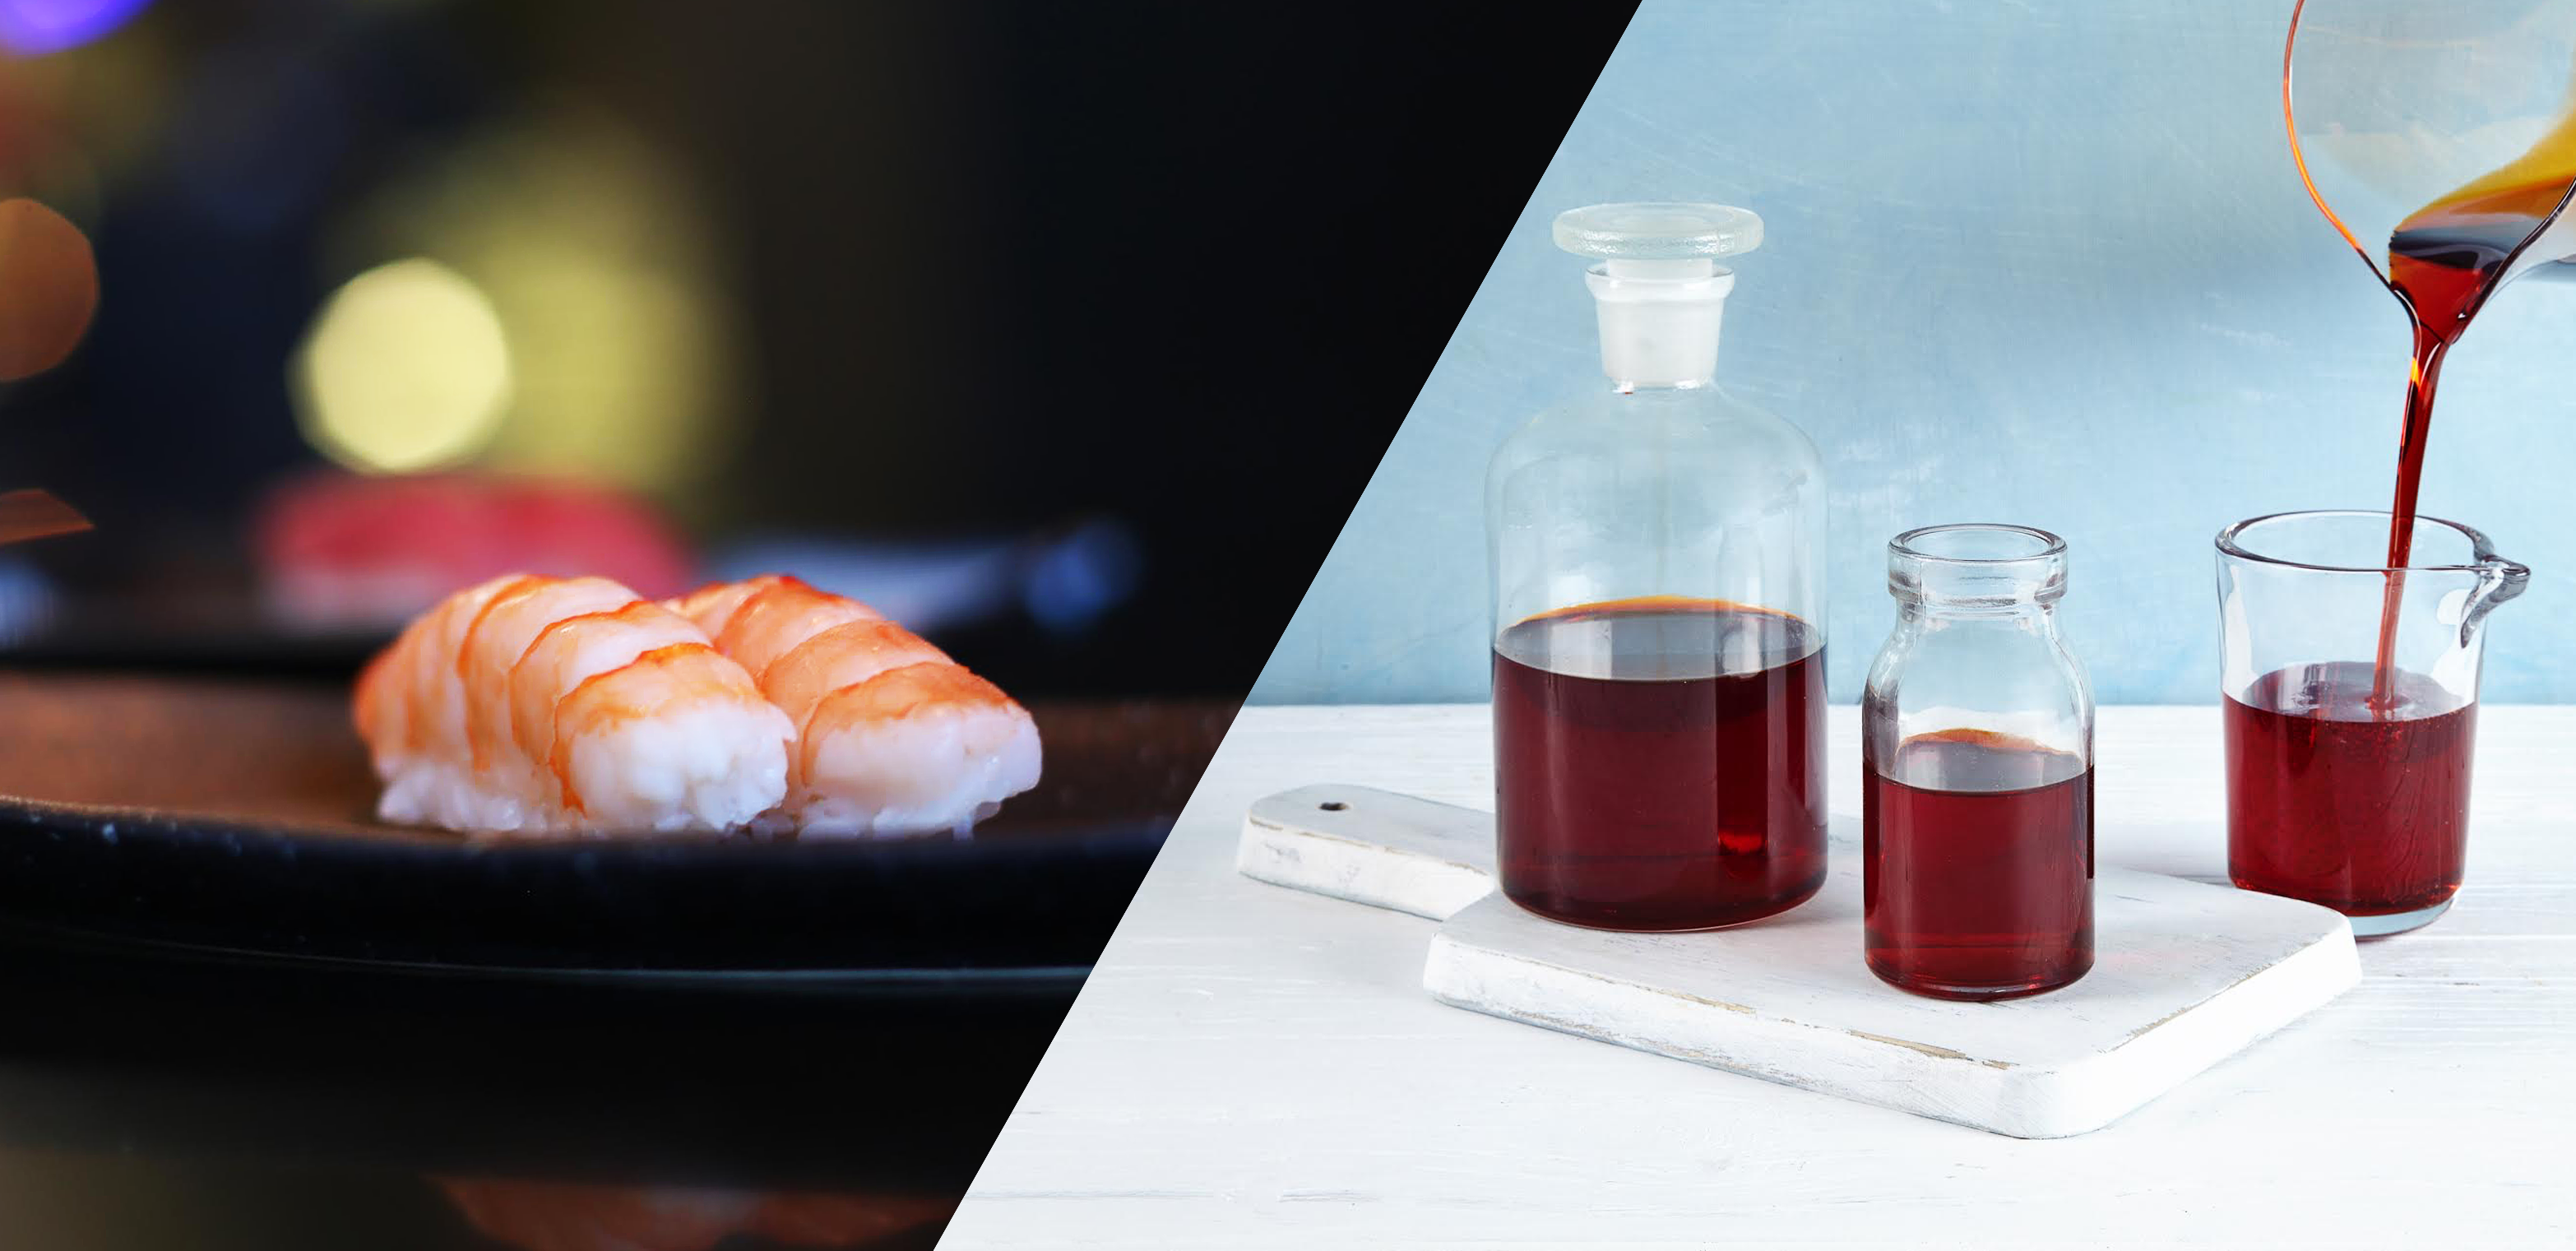 Astaxanthin krill oil and shrimp